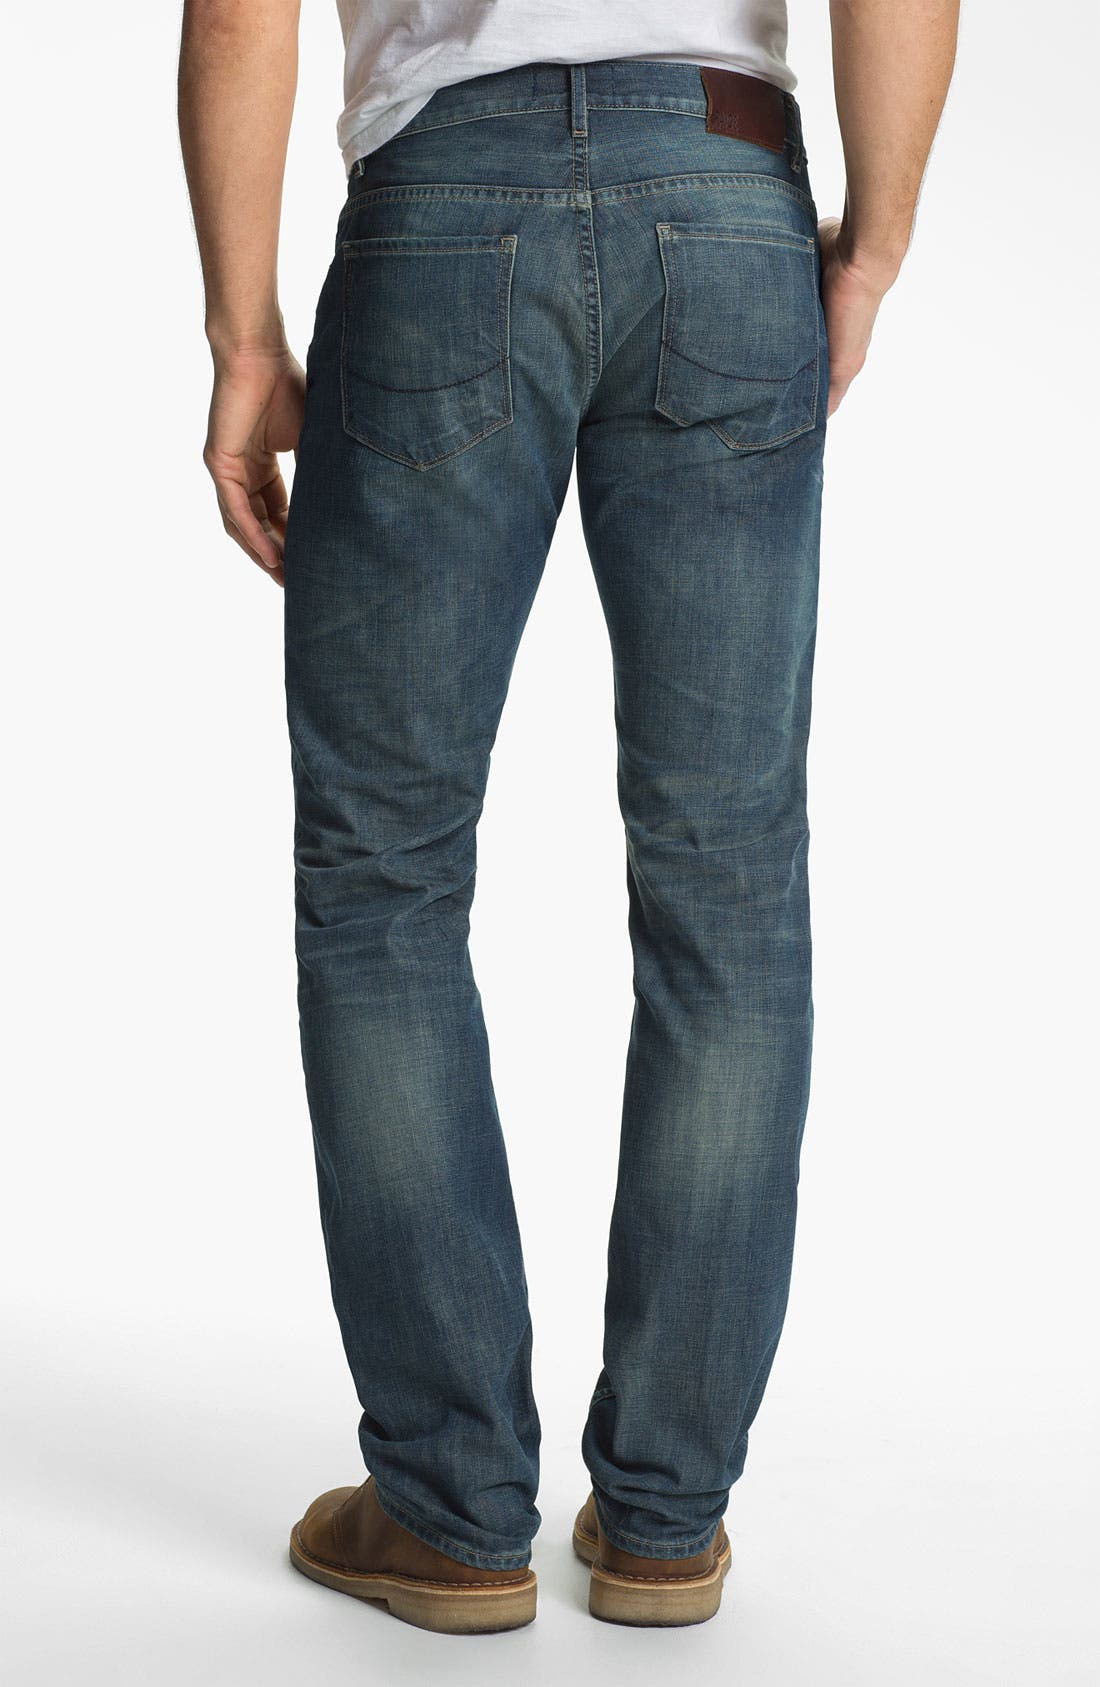 Alternate Image 1 Selected - PAIGE 'Normandie' Slim Straight Leg Jeans (Lowtide)